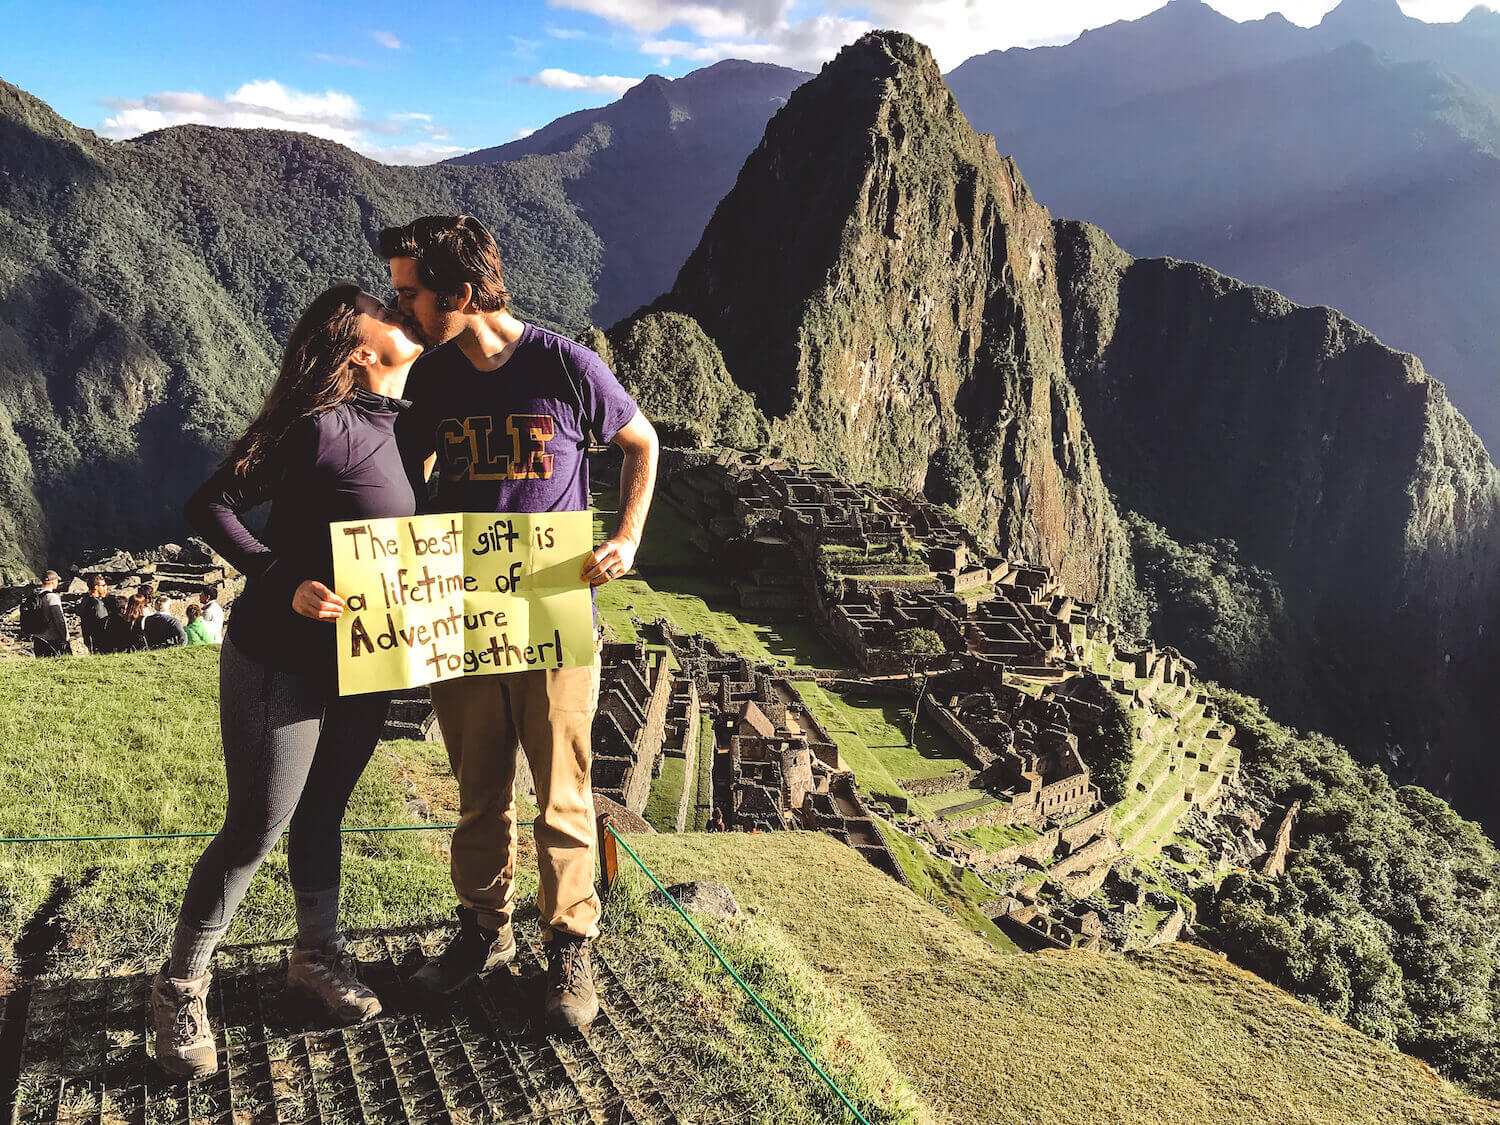 Kat and Chris holding a sign saying -The best gift is a lifetime of adventure together,- while kissing- overlooking Machu Picchu - Peru itinerary